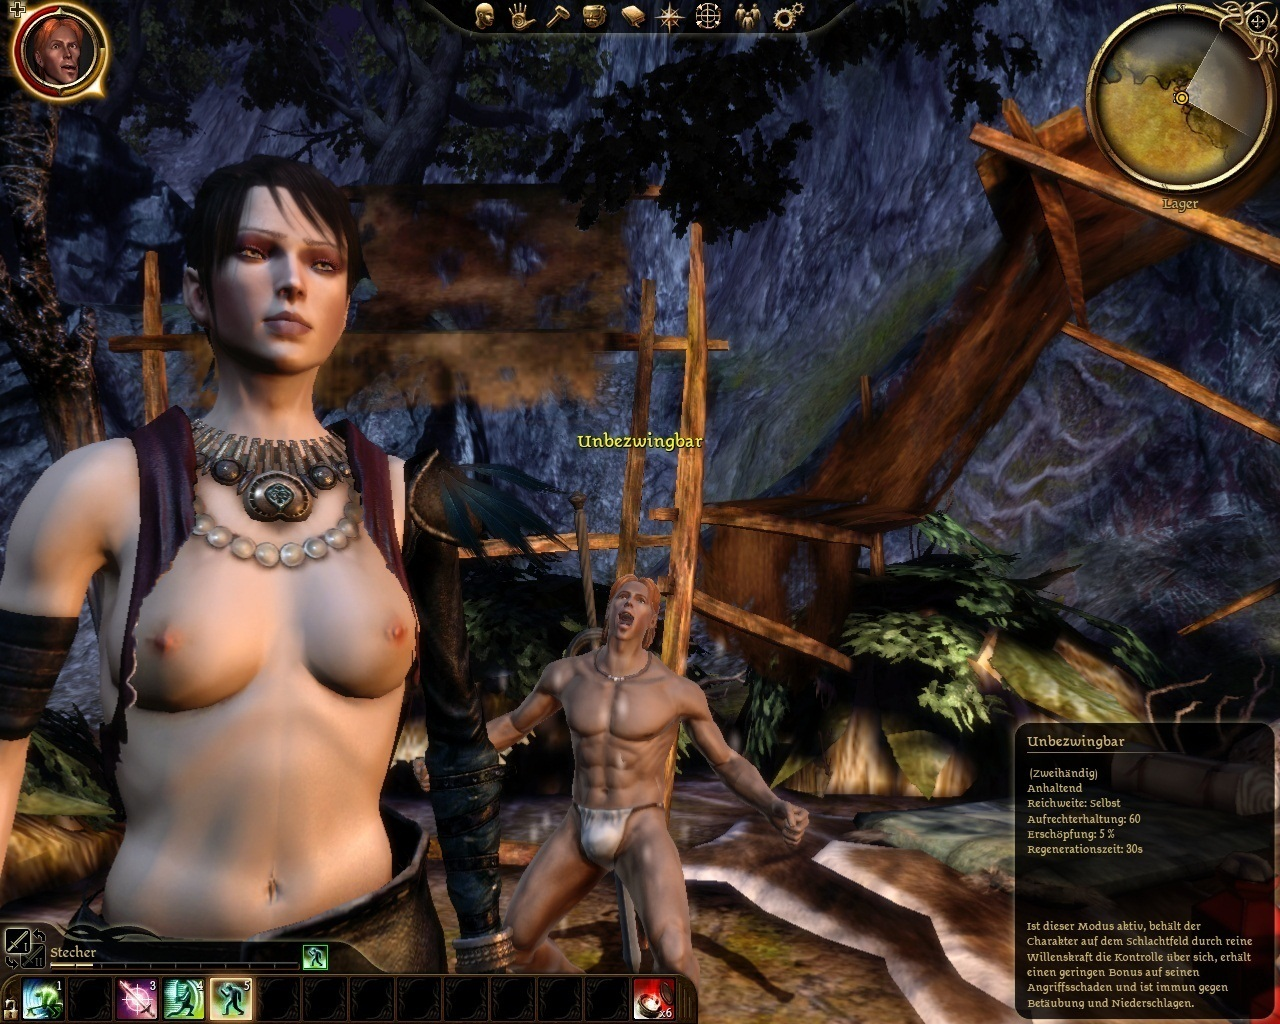 Dragon age 2 sex patch hardcore images